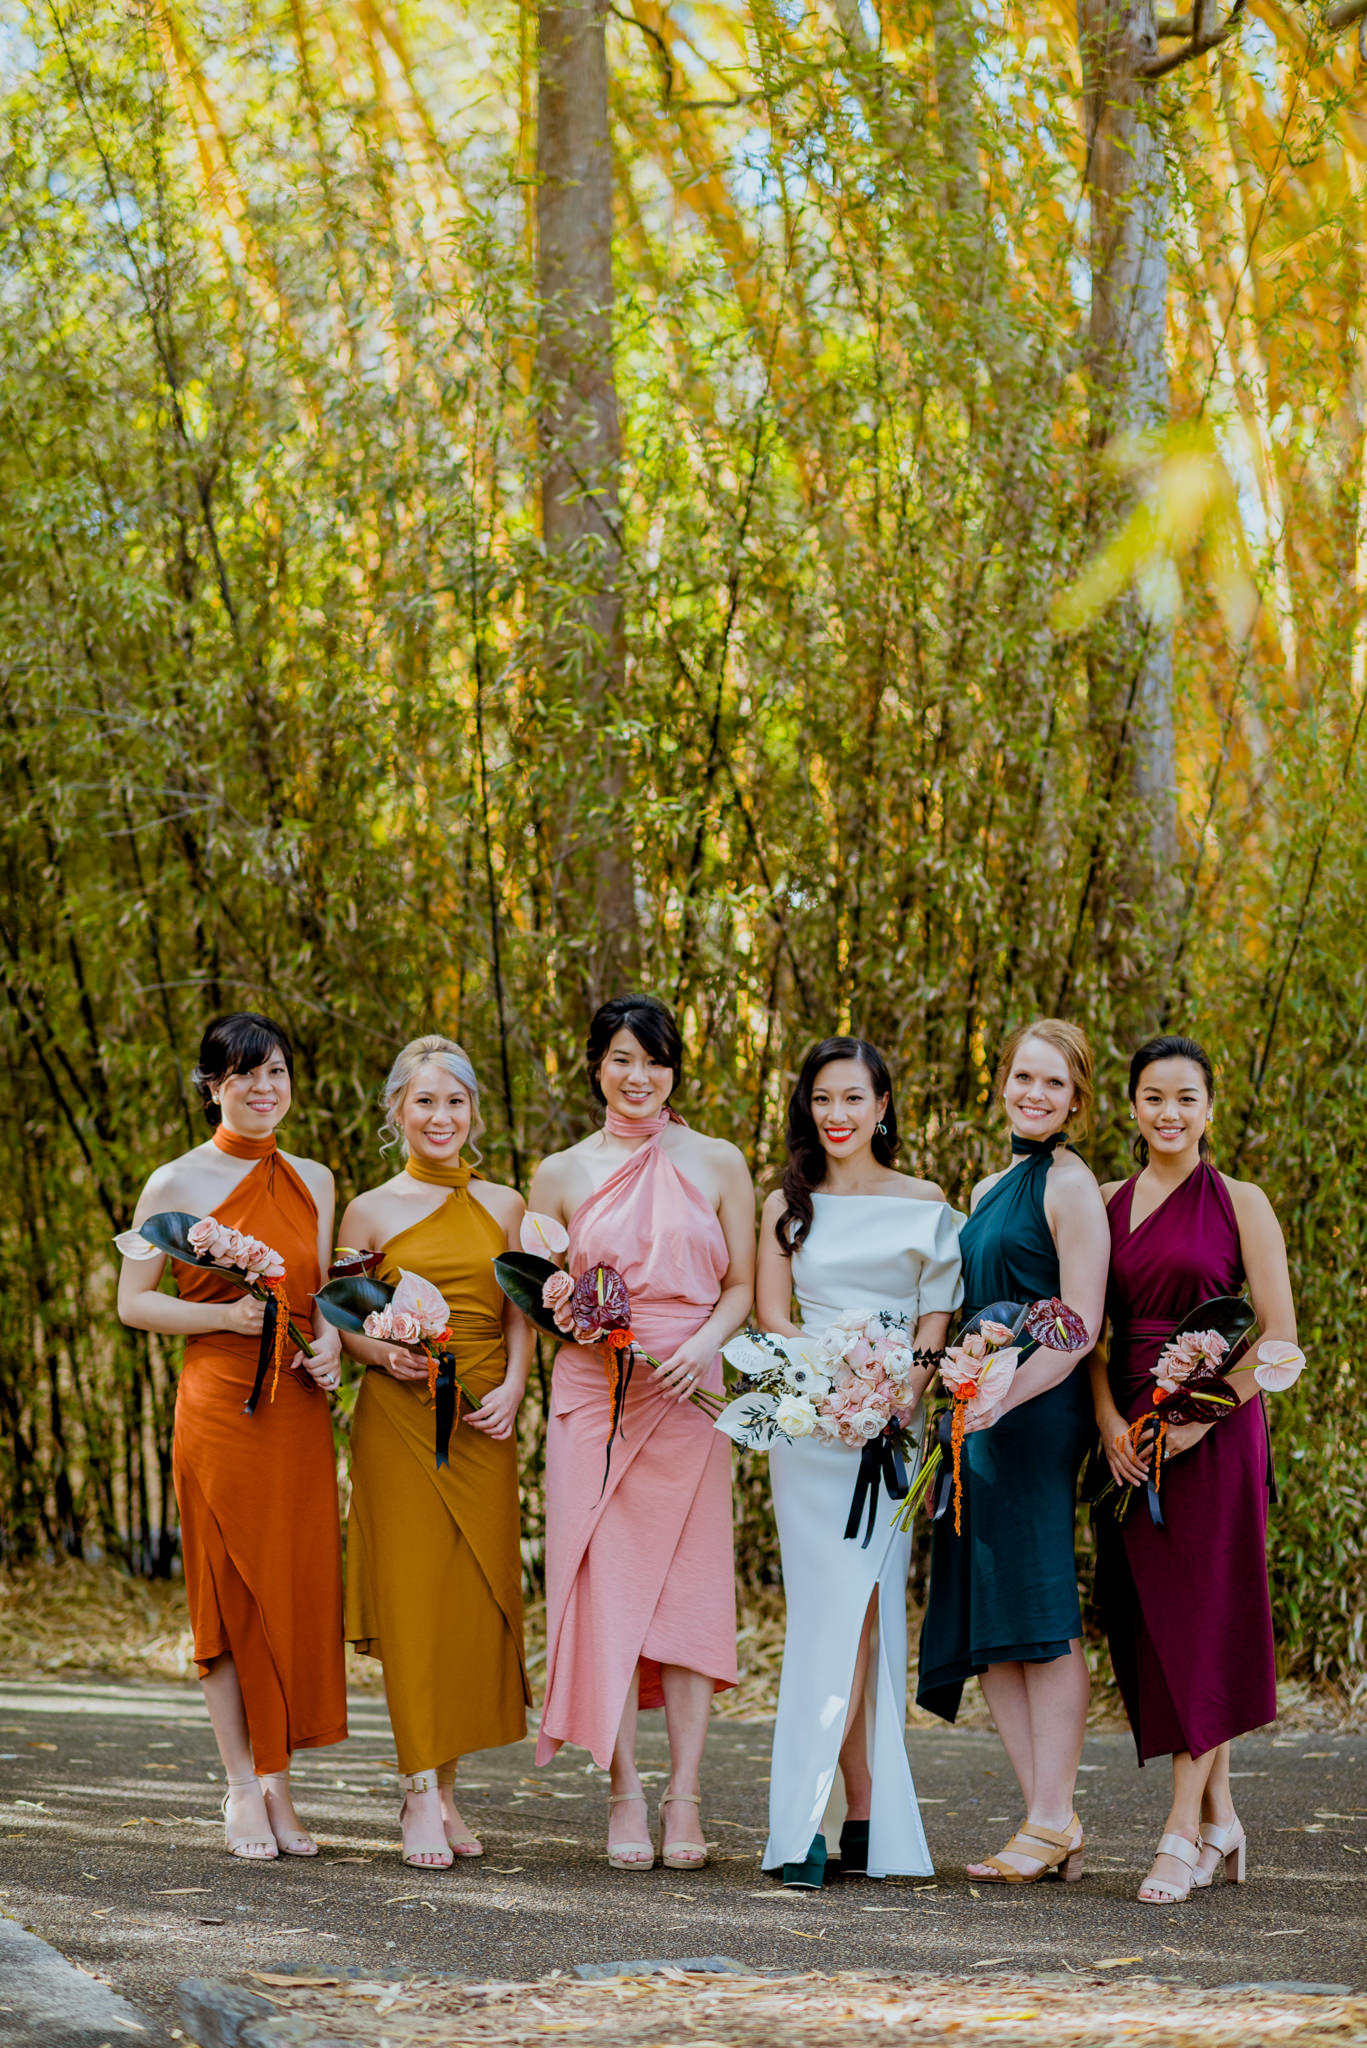 Bride and her bridesmaids standing, each in a different coloured dress